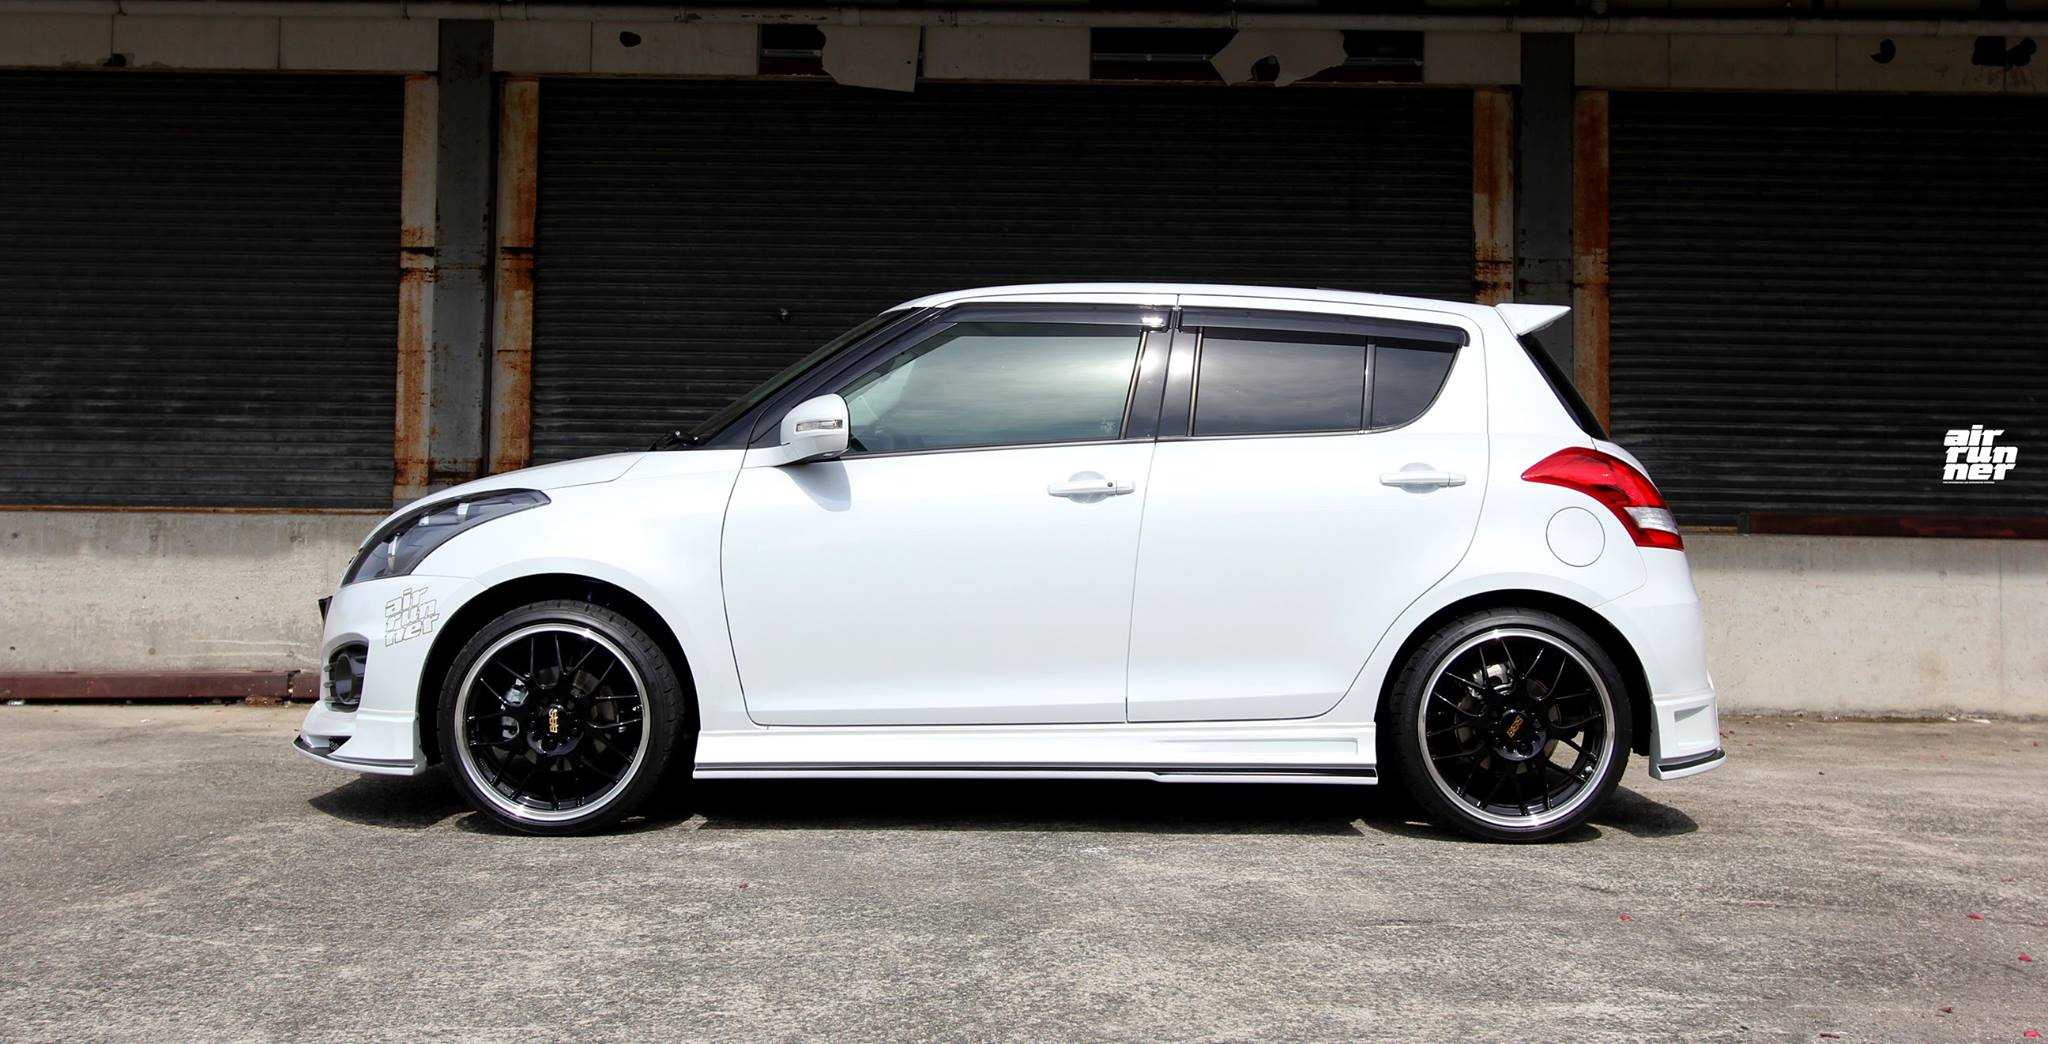 Suzuki Swift Sport Looks Cool With Beli Kit And Air Ride